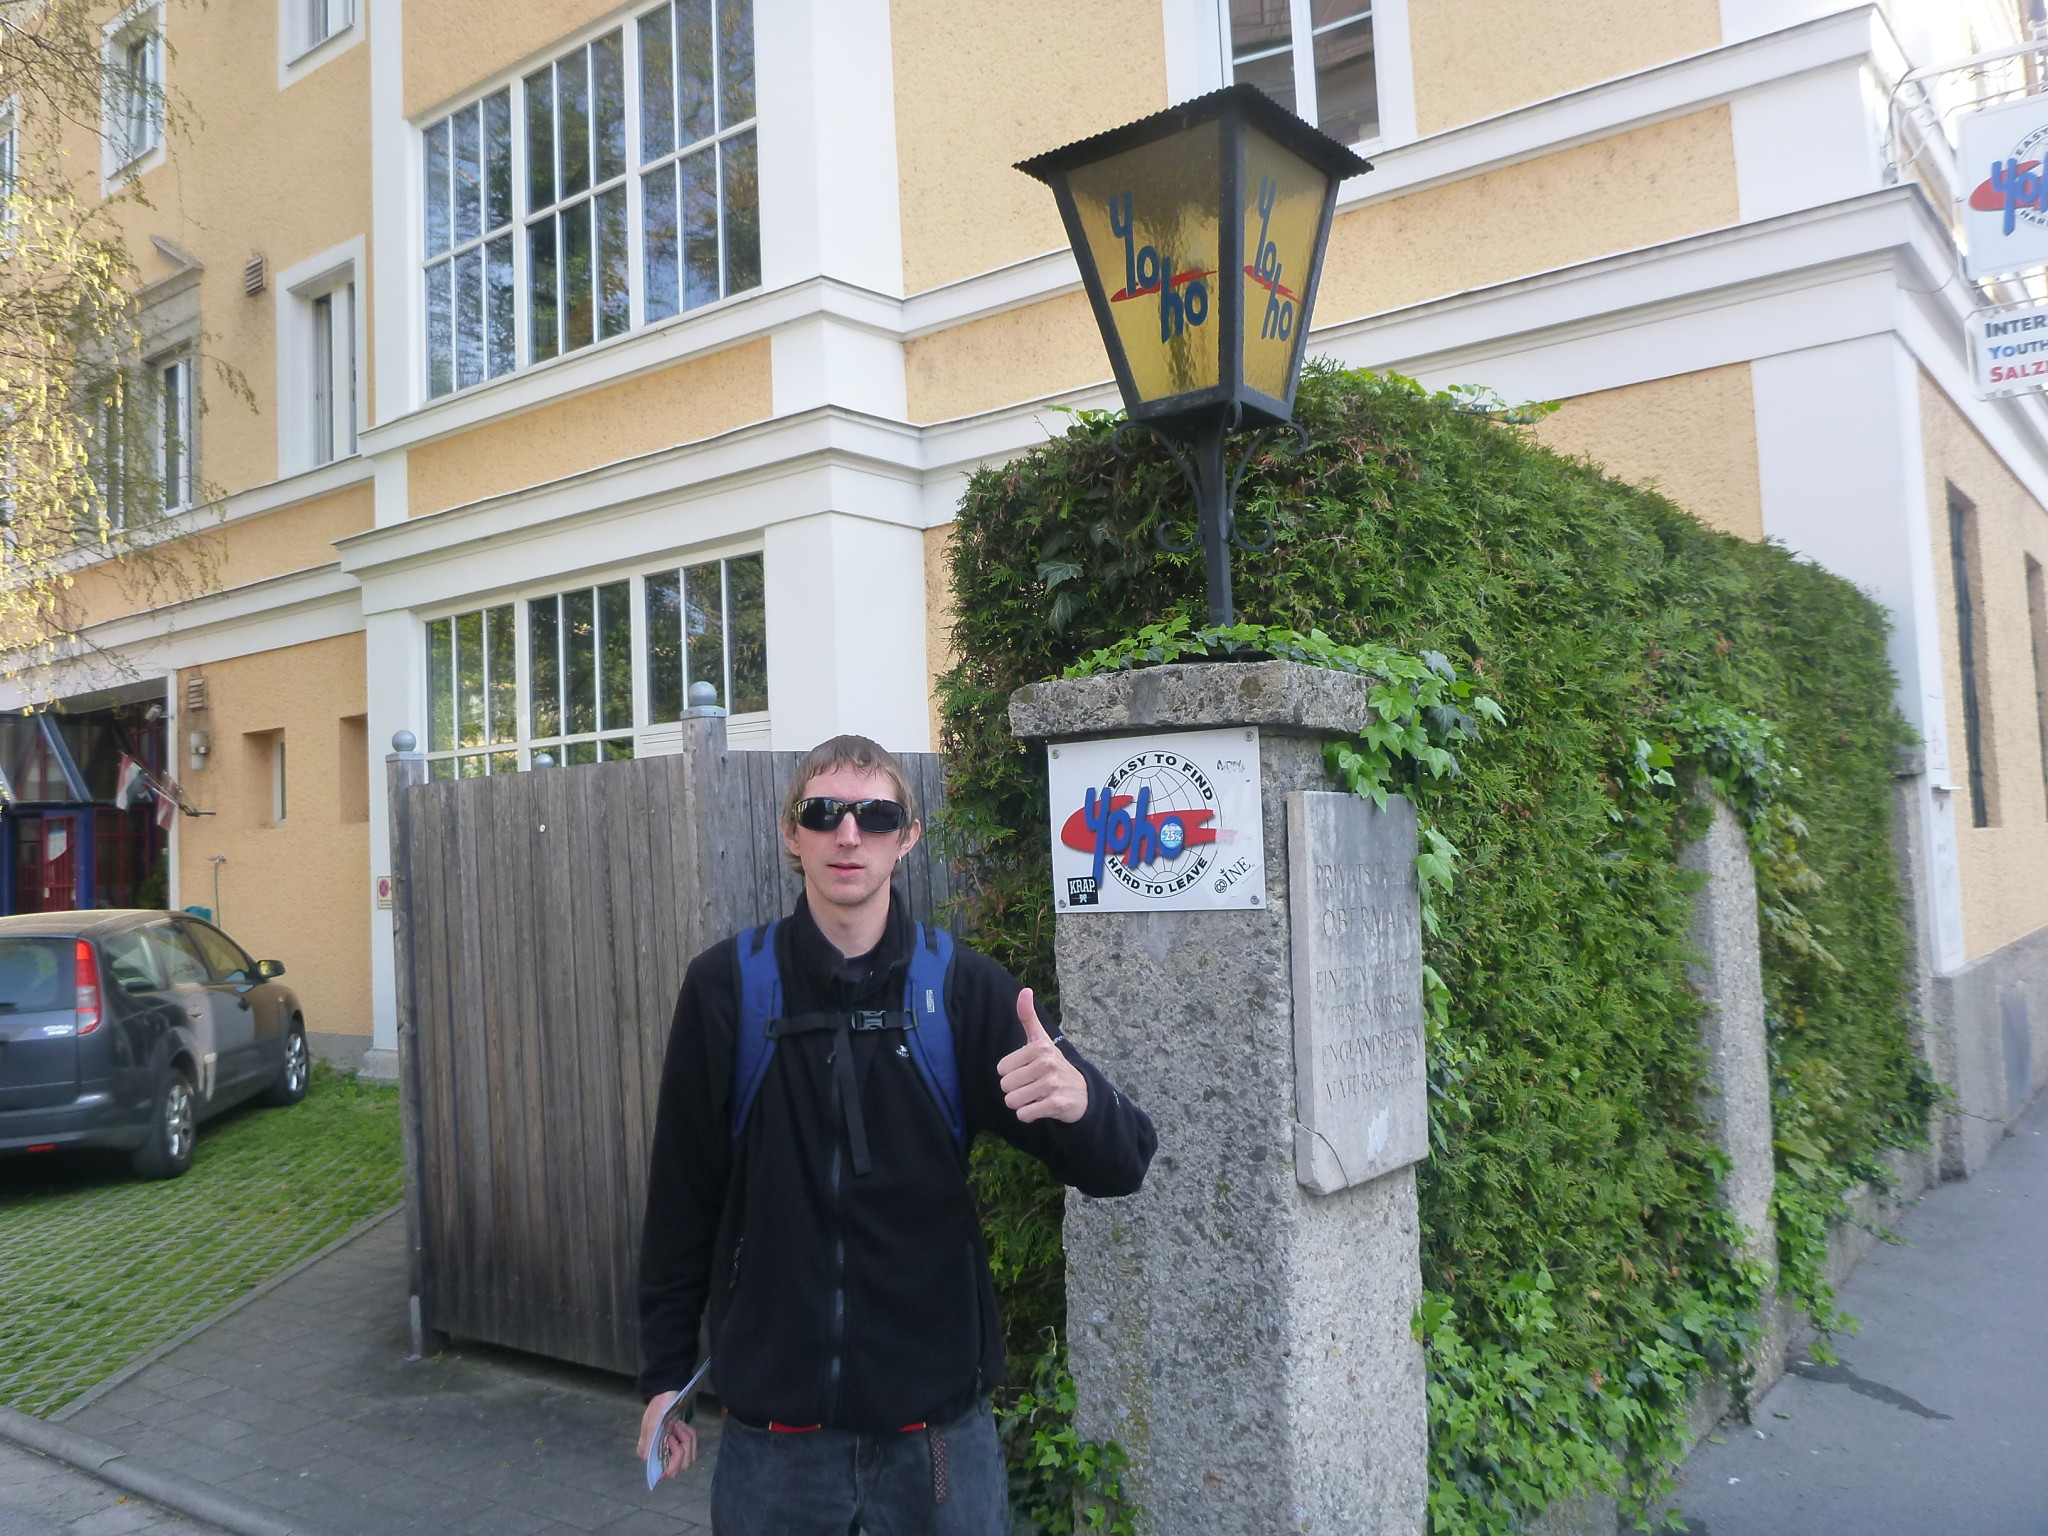 Backpacking in Austria: My Stay at the YoHo Hostel in Salzburg